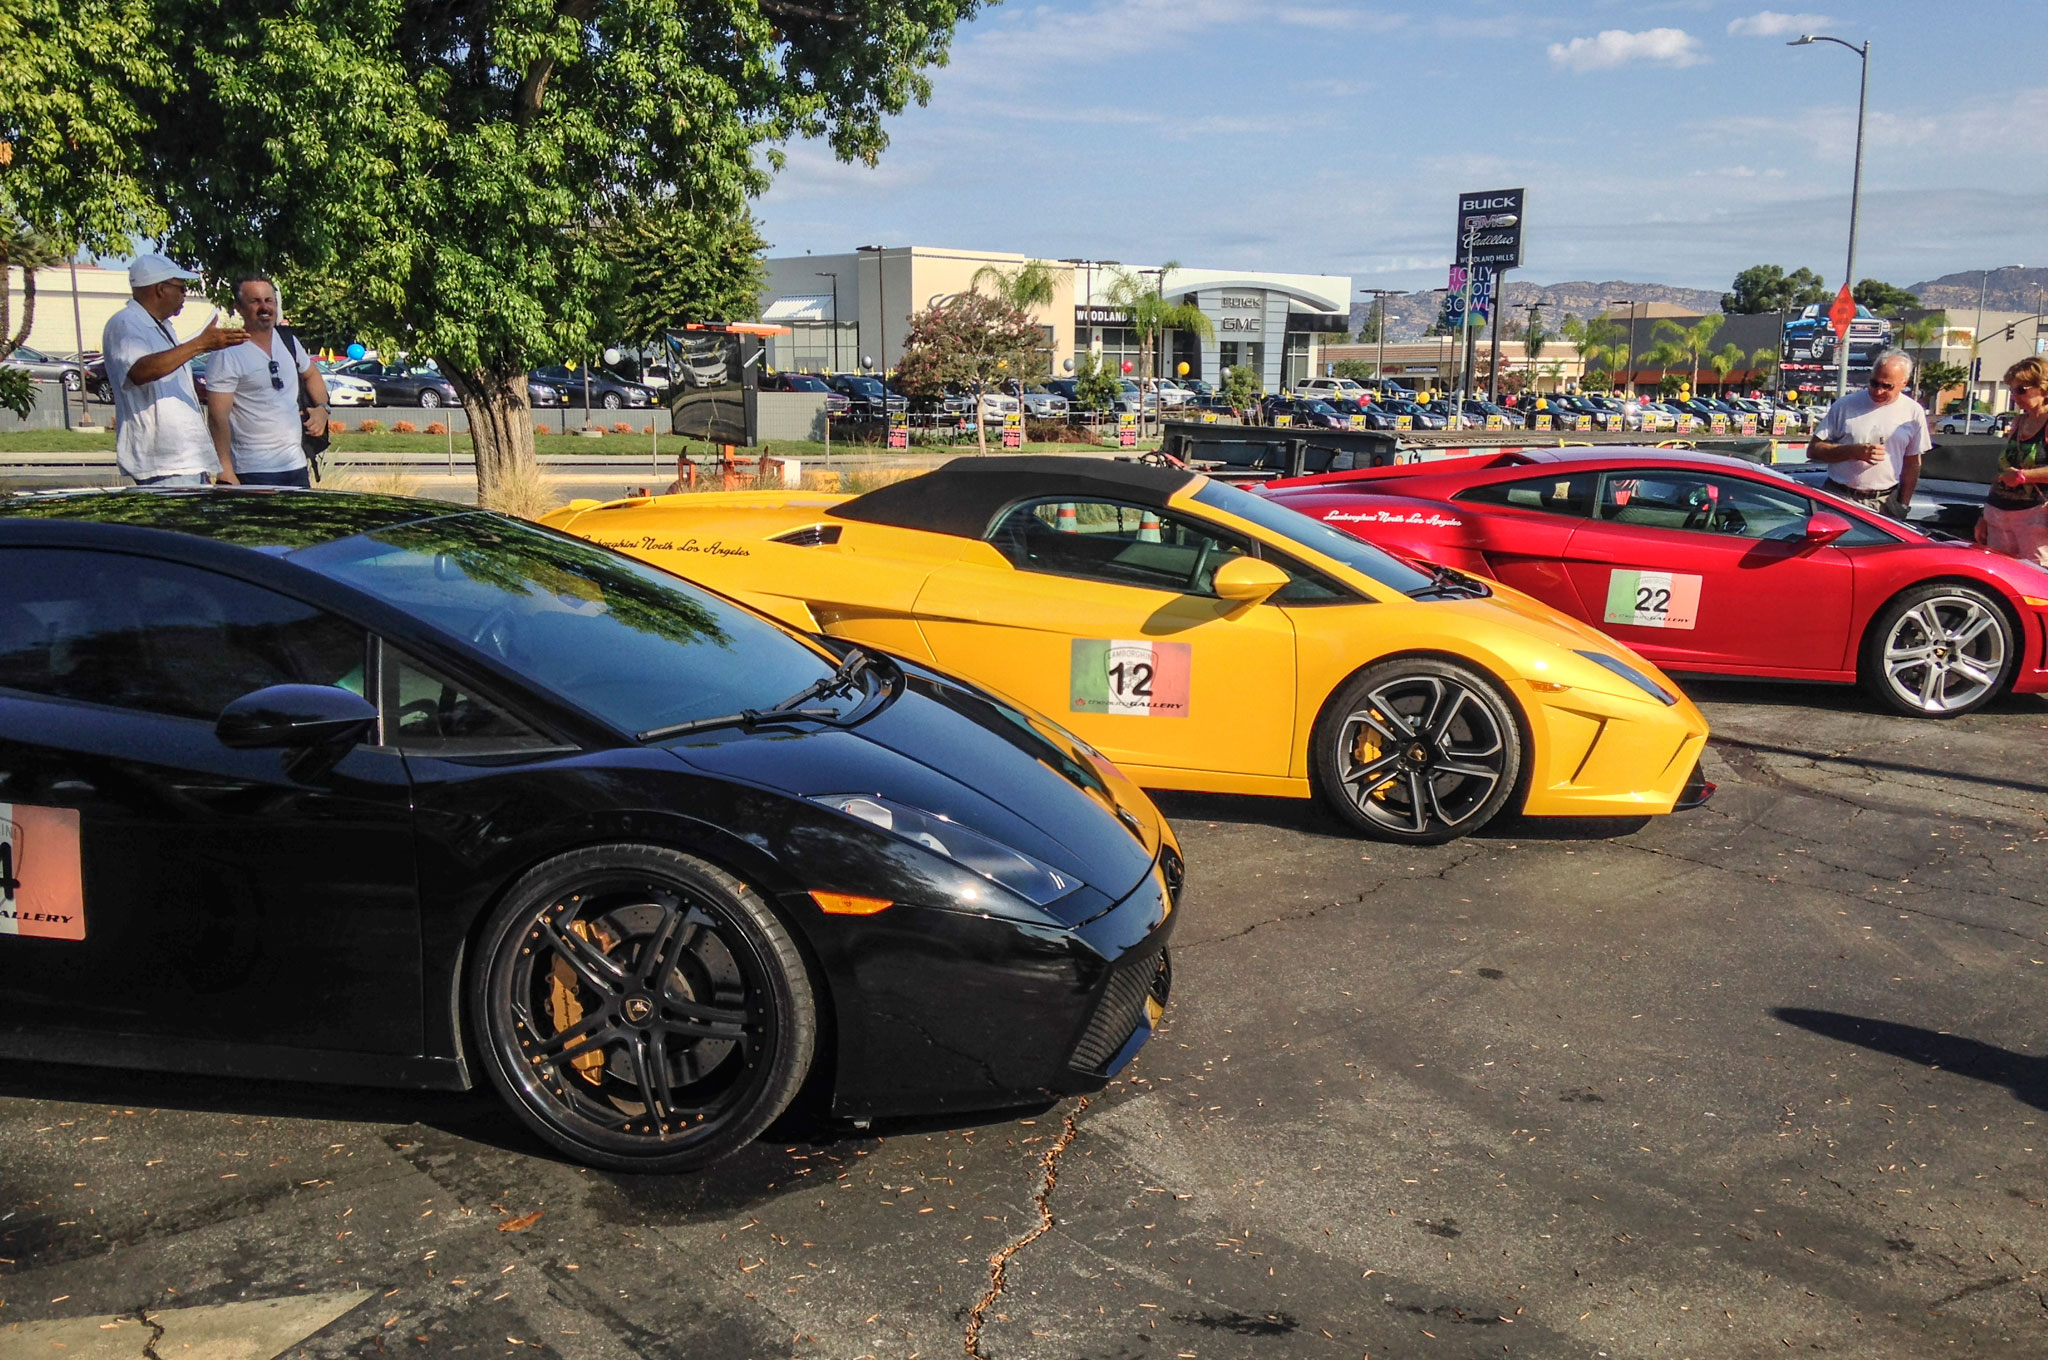 The Auto Gallery kept track of the Lambos on our run through the canyons by carefully attaching numbers to each six-figure machine. A herd of 50 bulls charged through the hills above Malibu together.